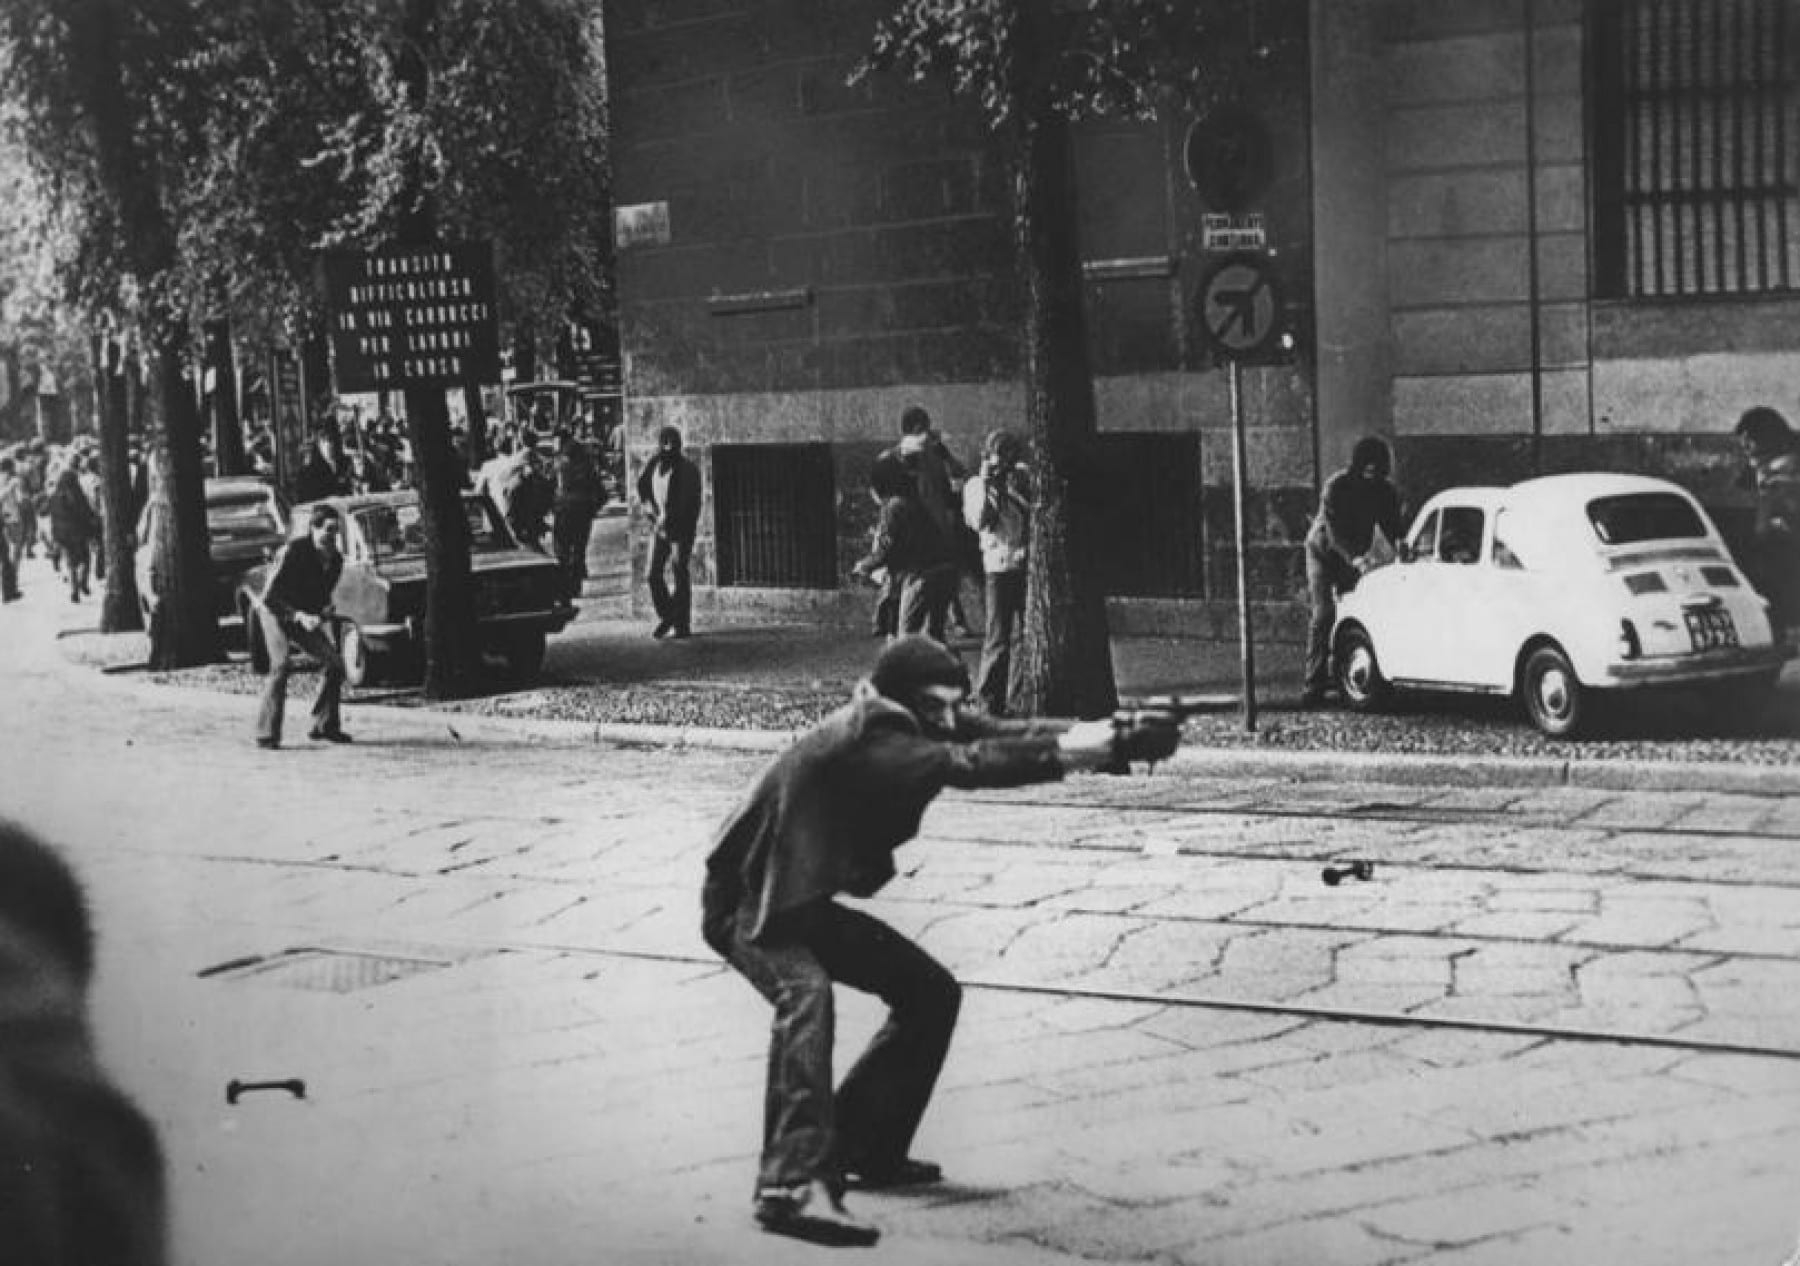 Black and White Photography by Paolo Pedrizzetti - Milan,May14, 1977